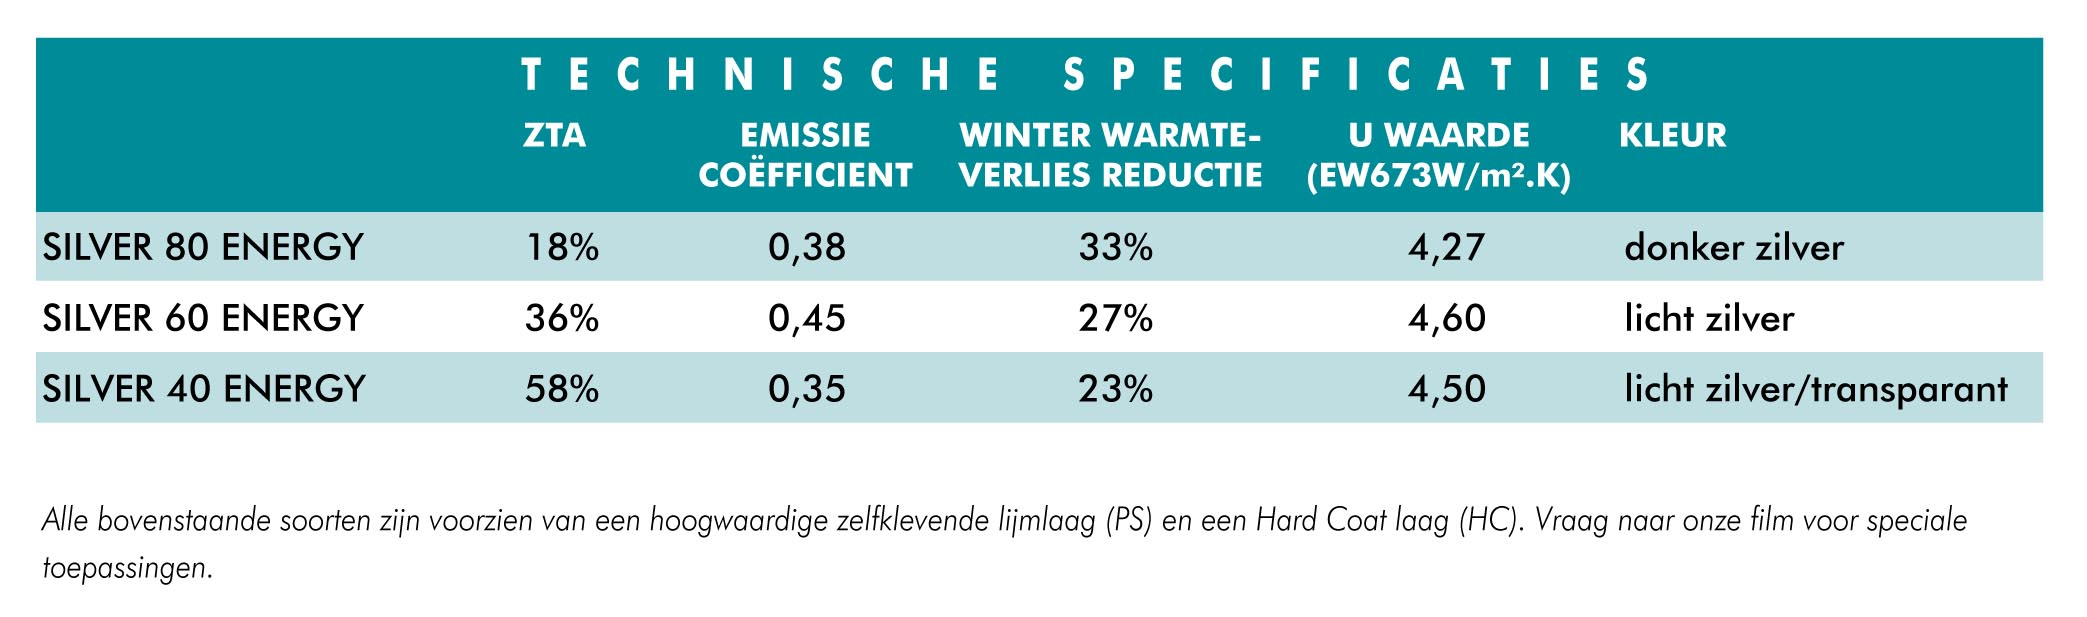 Technische specificaties energie besparende HR Glasfolie